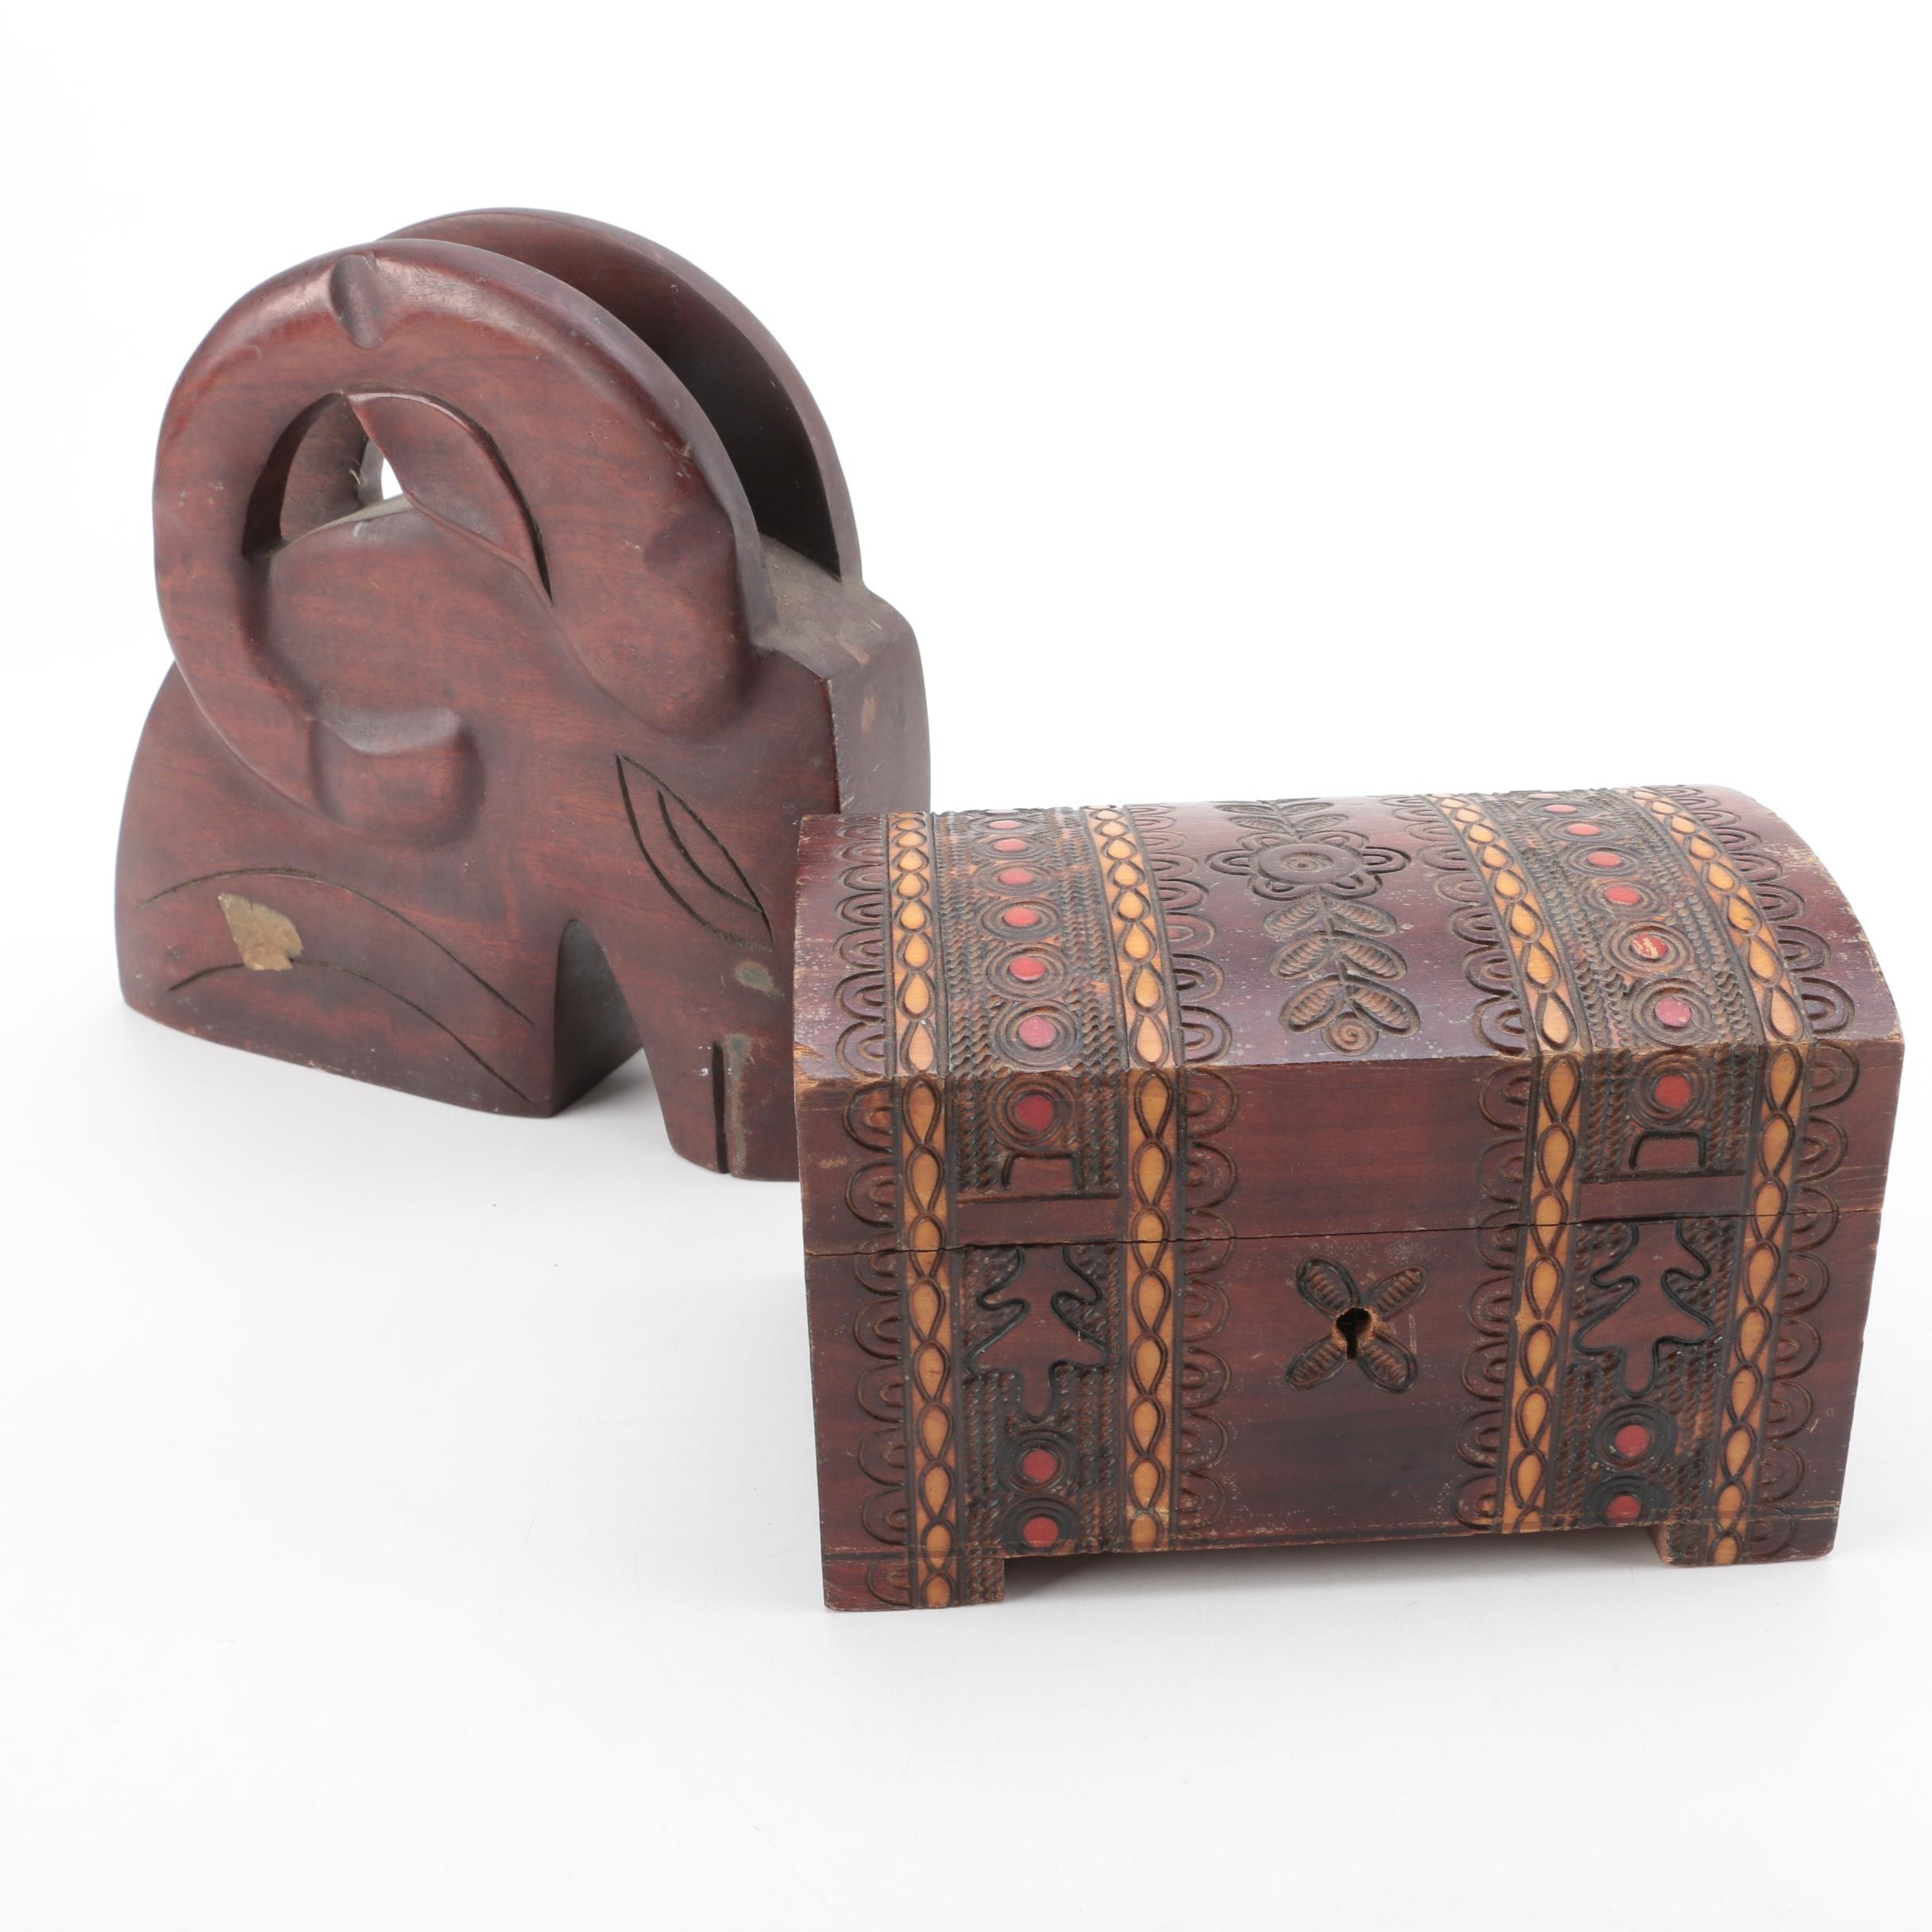 Haitian Solid Mahogany Ram Paperweight and Wooden Chest